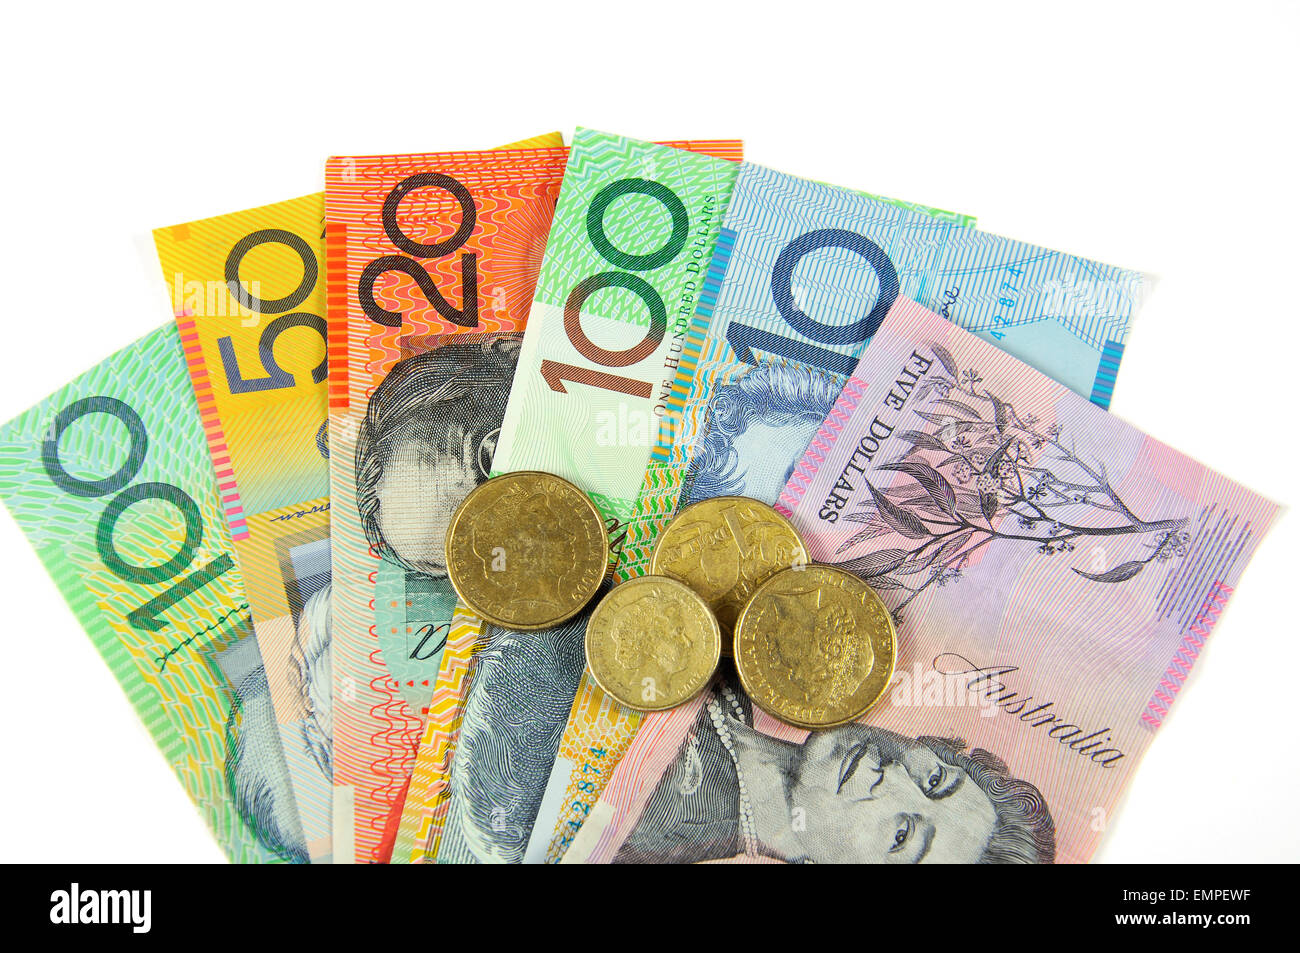 how to buy a business with no money australia